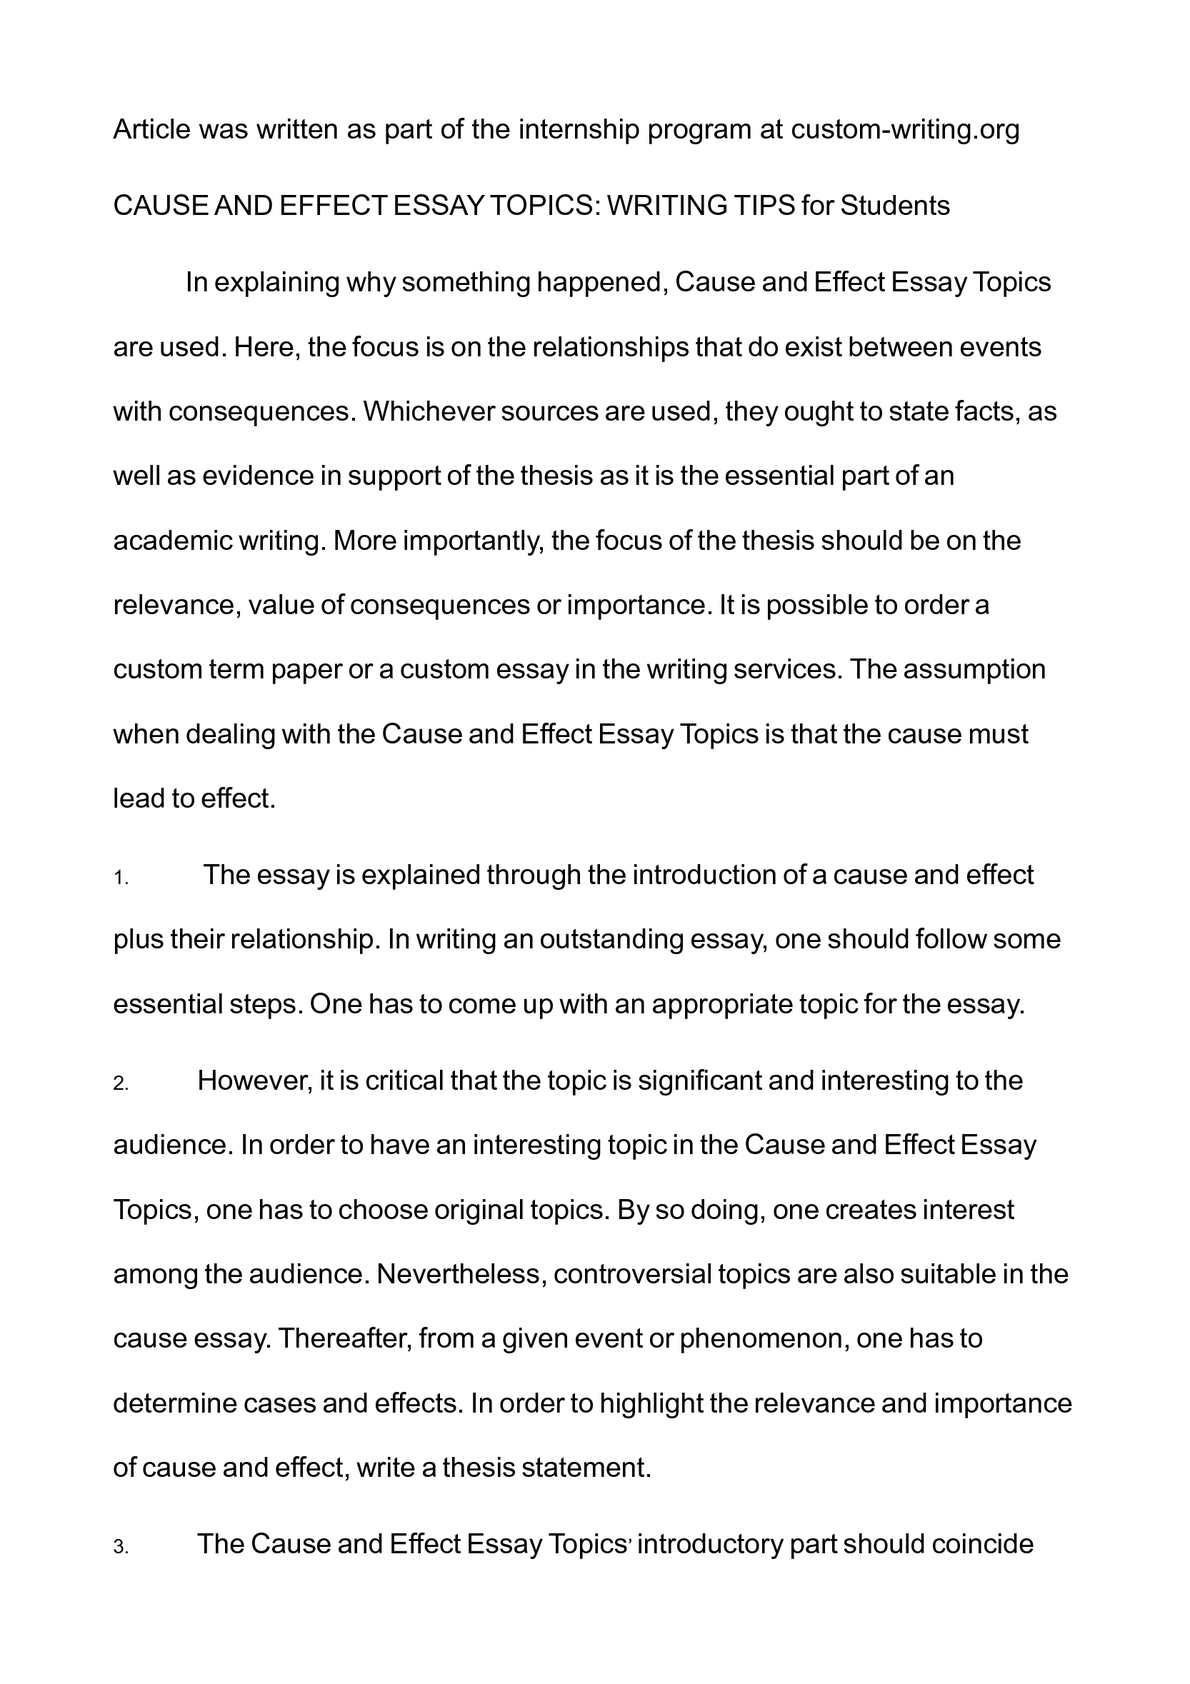 002 Essay Example P1 Cause And Effect Exceptional Topics High School College For Students Full